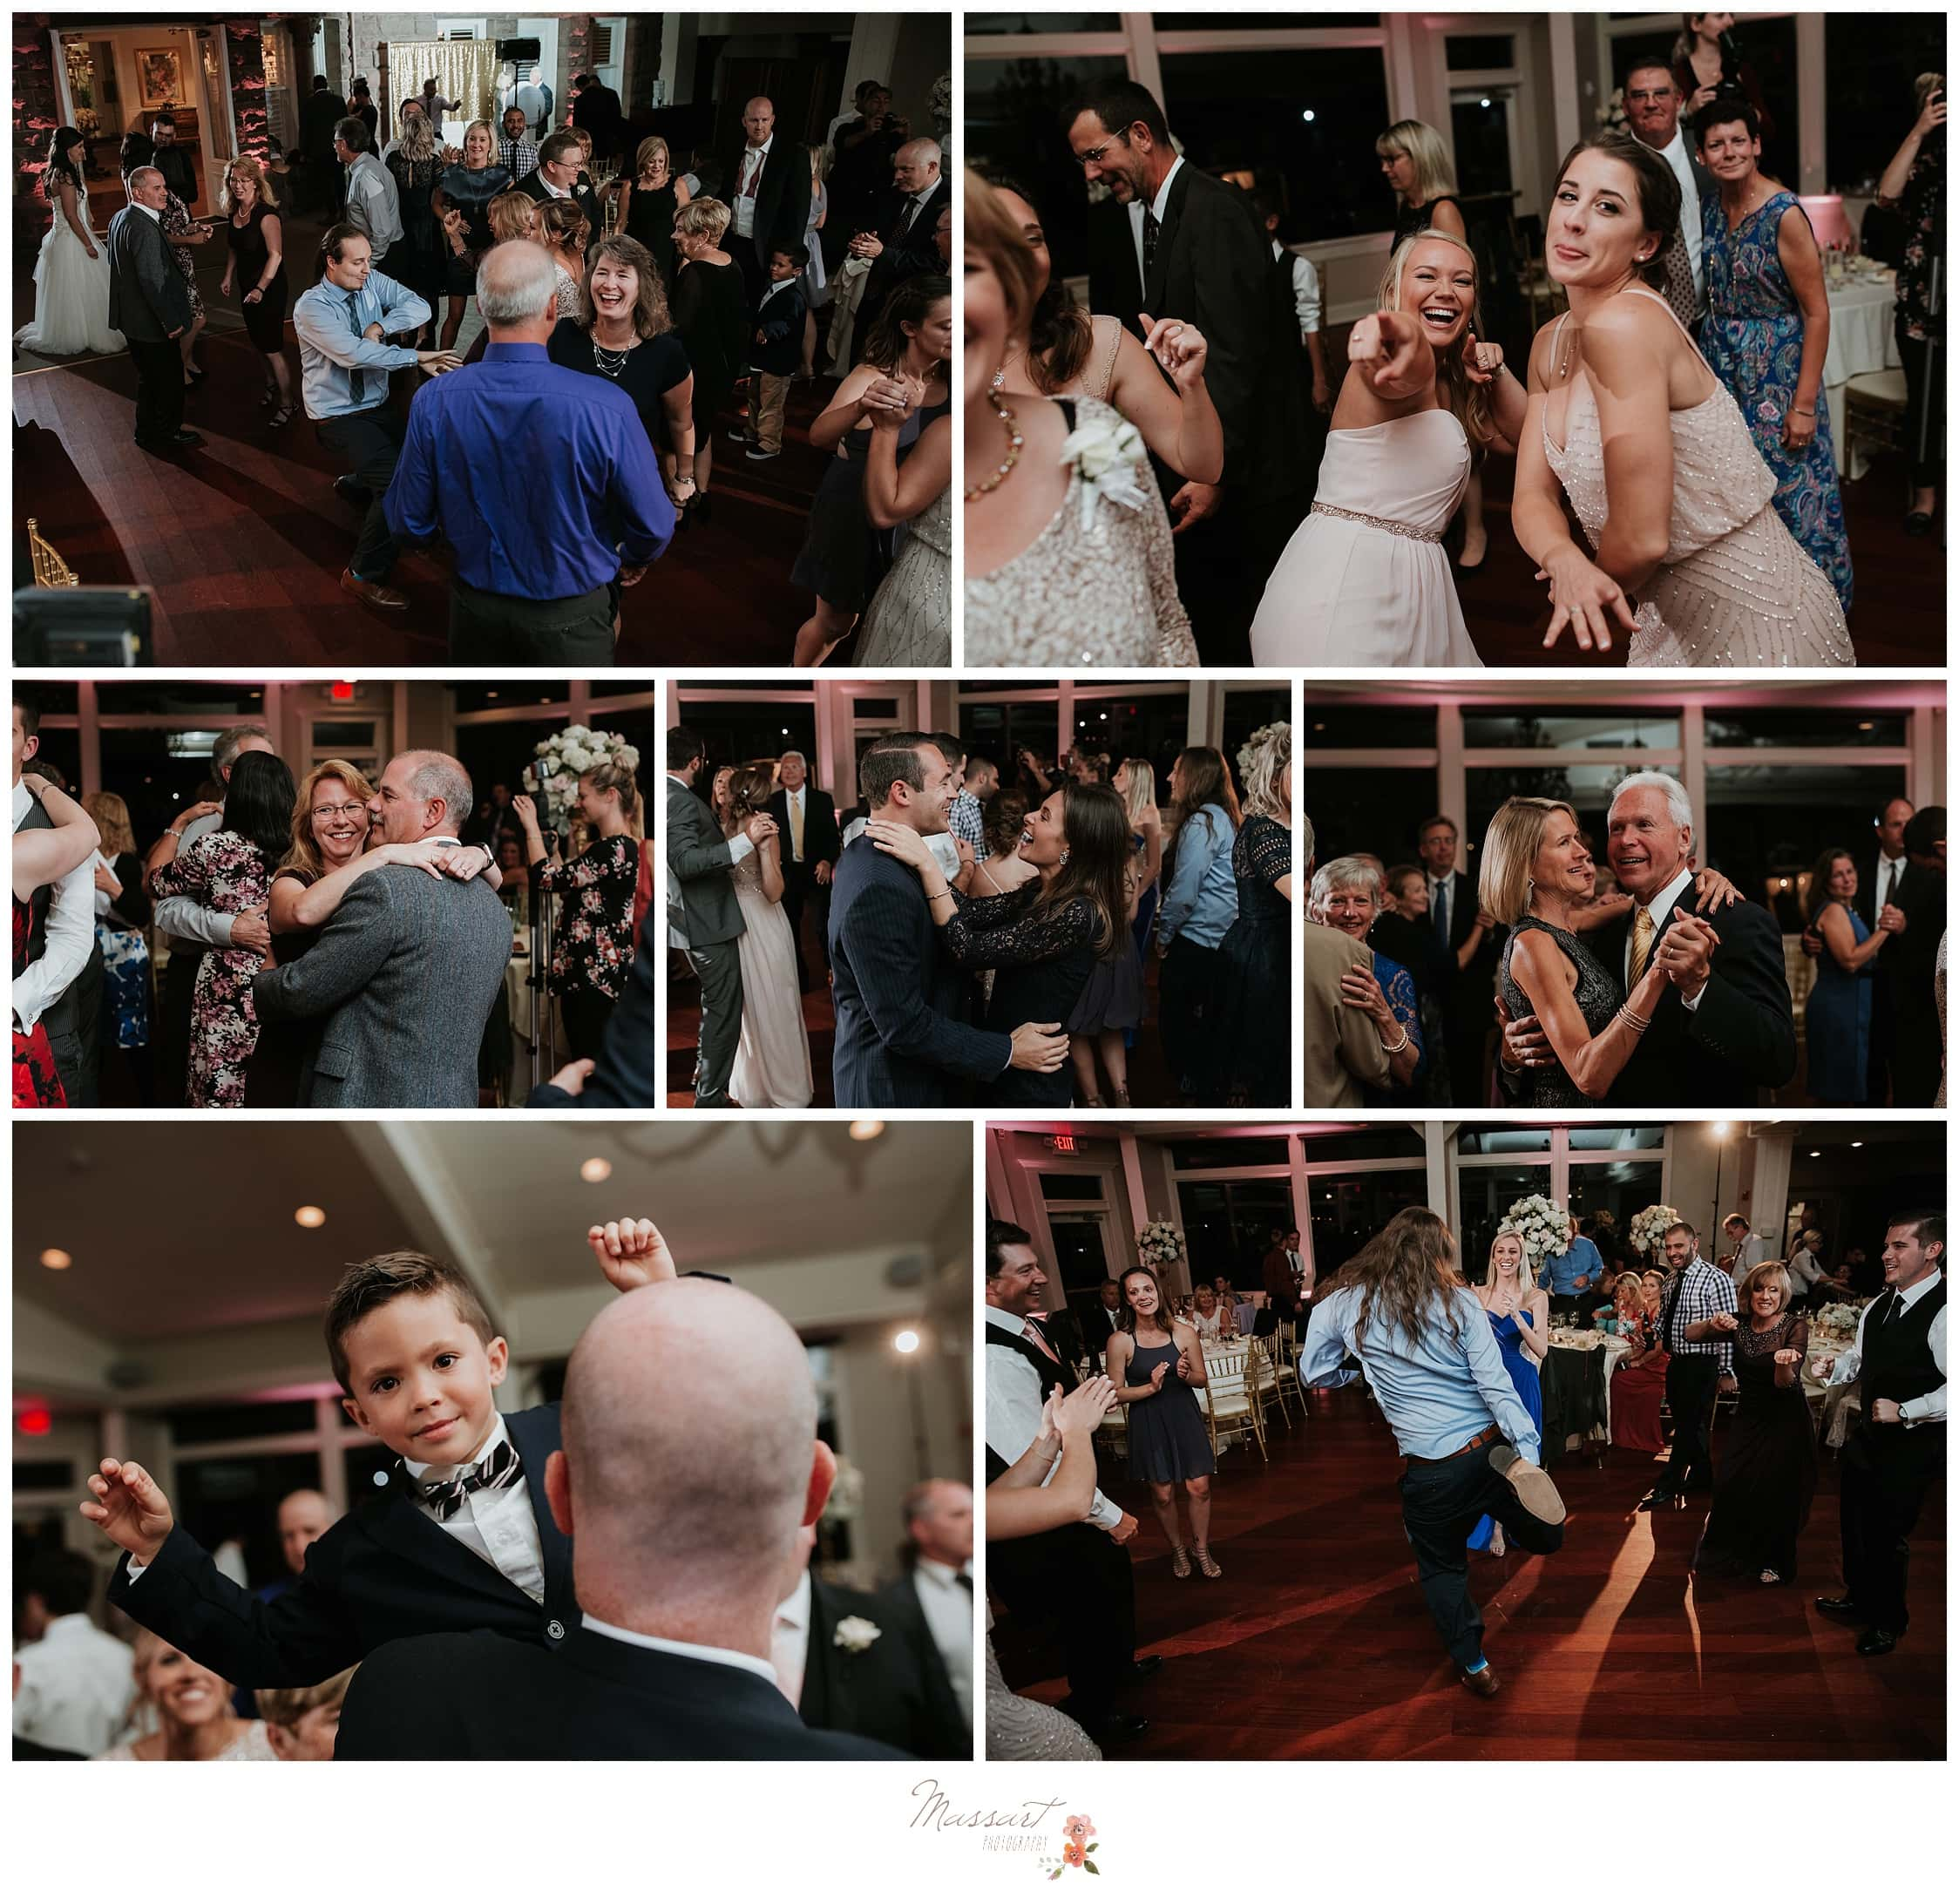 Wedding guests dance together at the reception photographed by Massart Photography RI